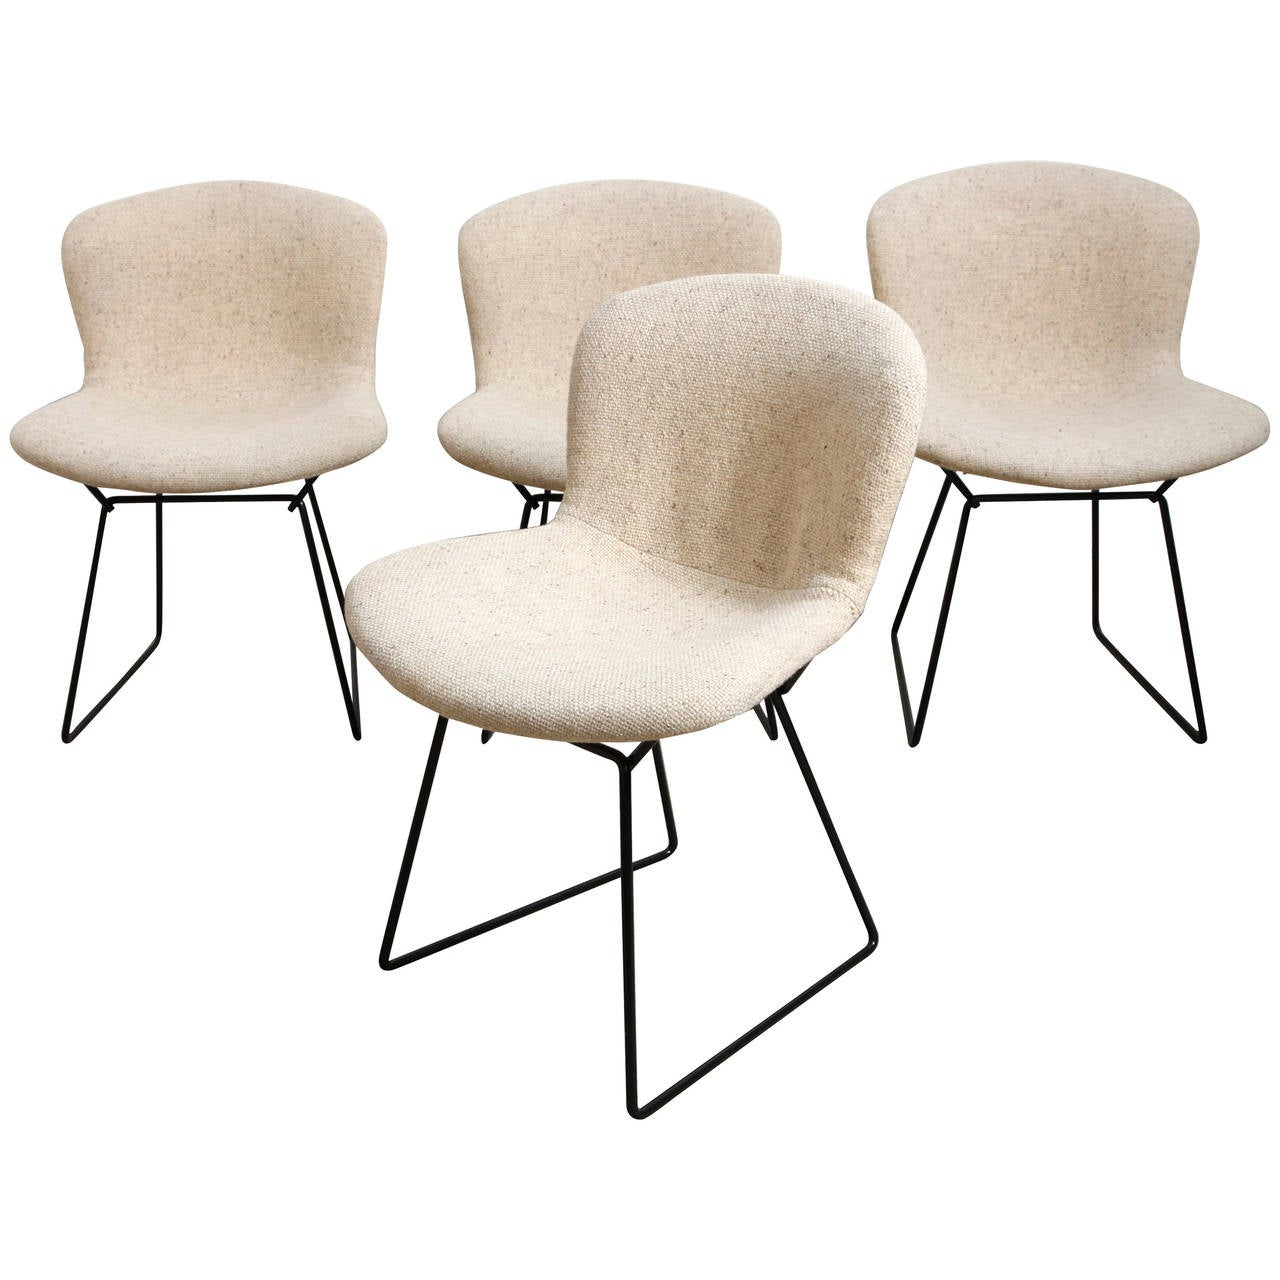 Set of Four Black Wire Chairs by Harry Bertoia for Knoll at 1stdibs